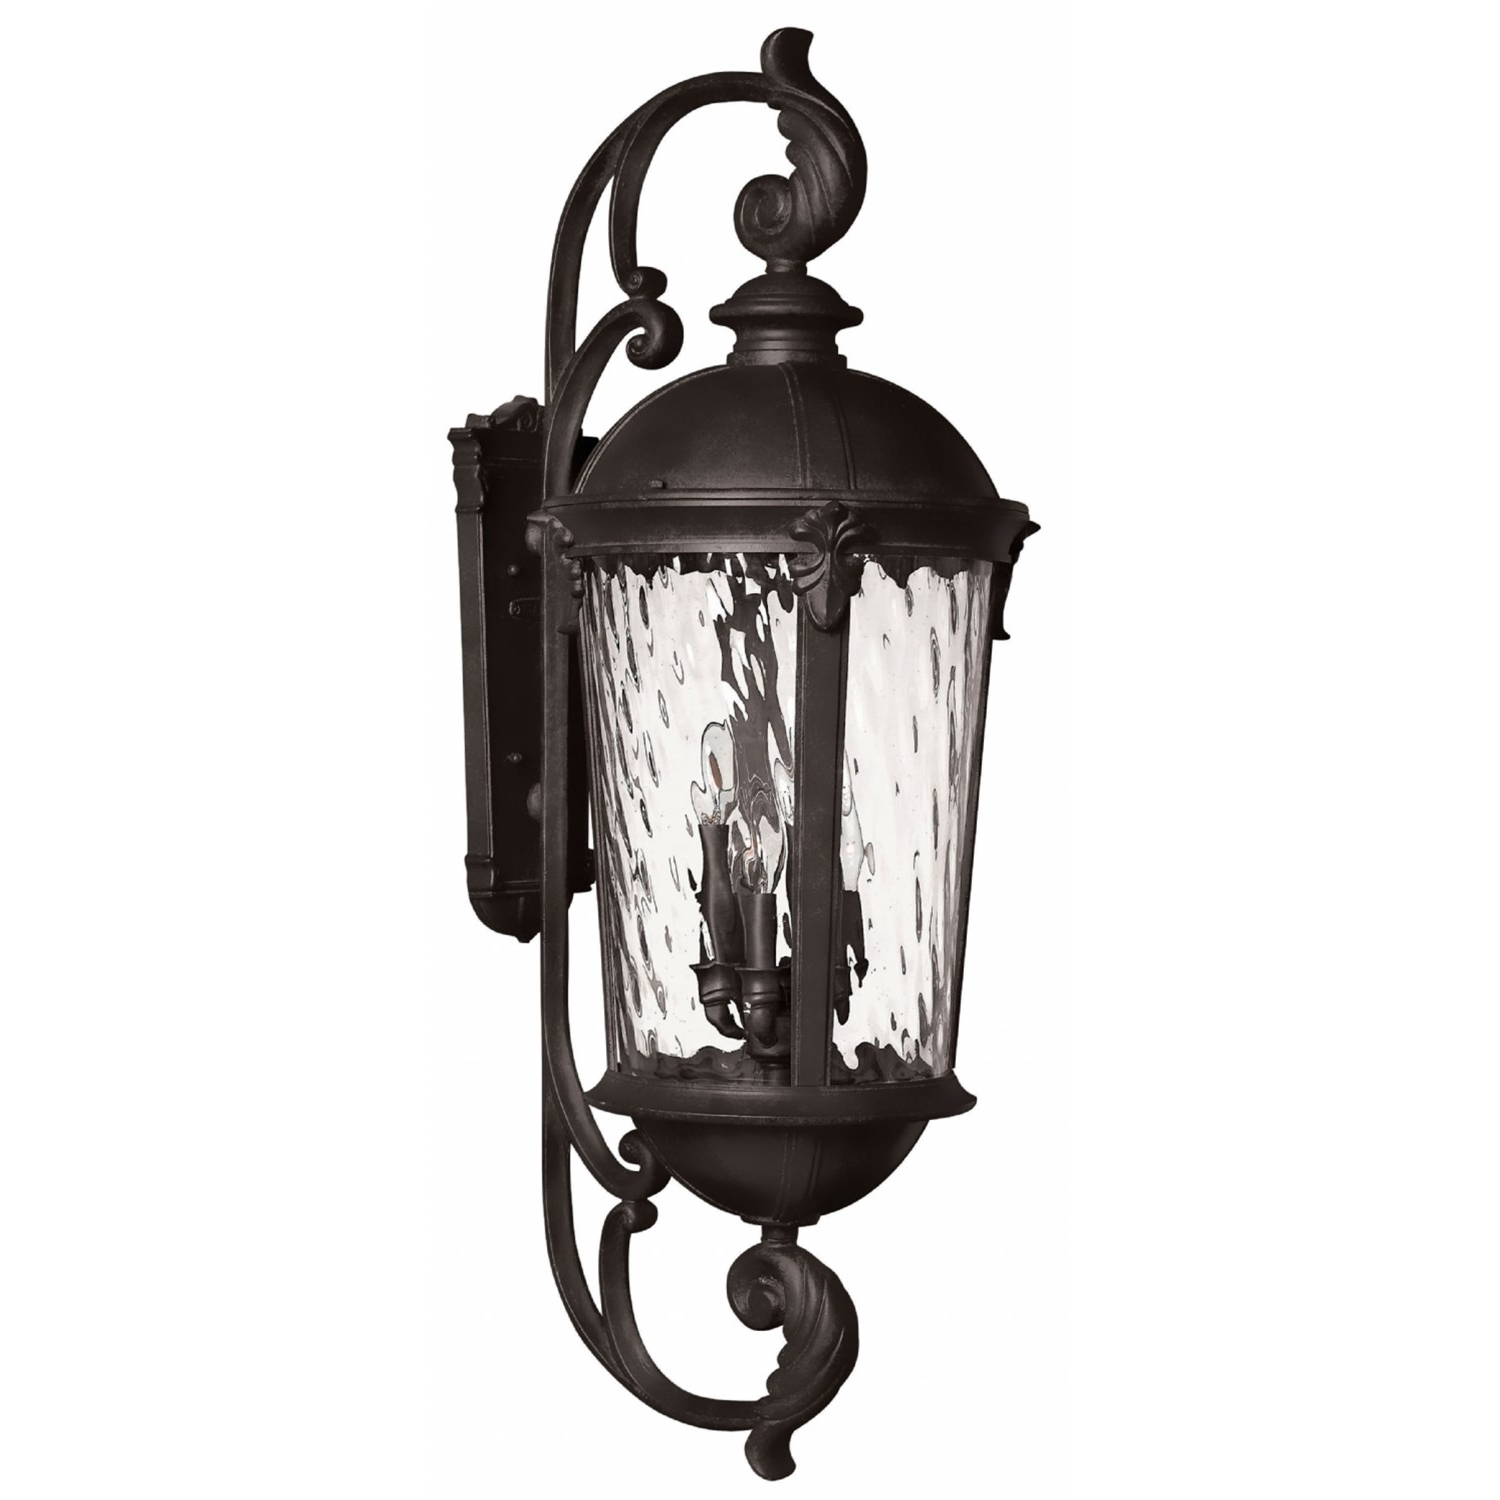 Hinkley 1929Bk Led Windsor 2 Light Extra Large Outdoor Wall Mount Inside Newest Extra Large Wall Mount Porch Hinkley Lighting (View 13 of 20)